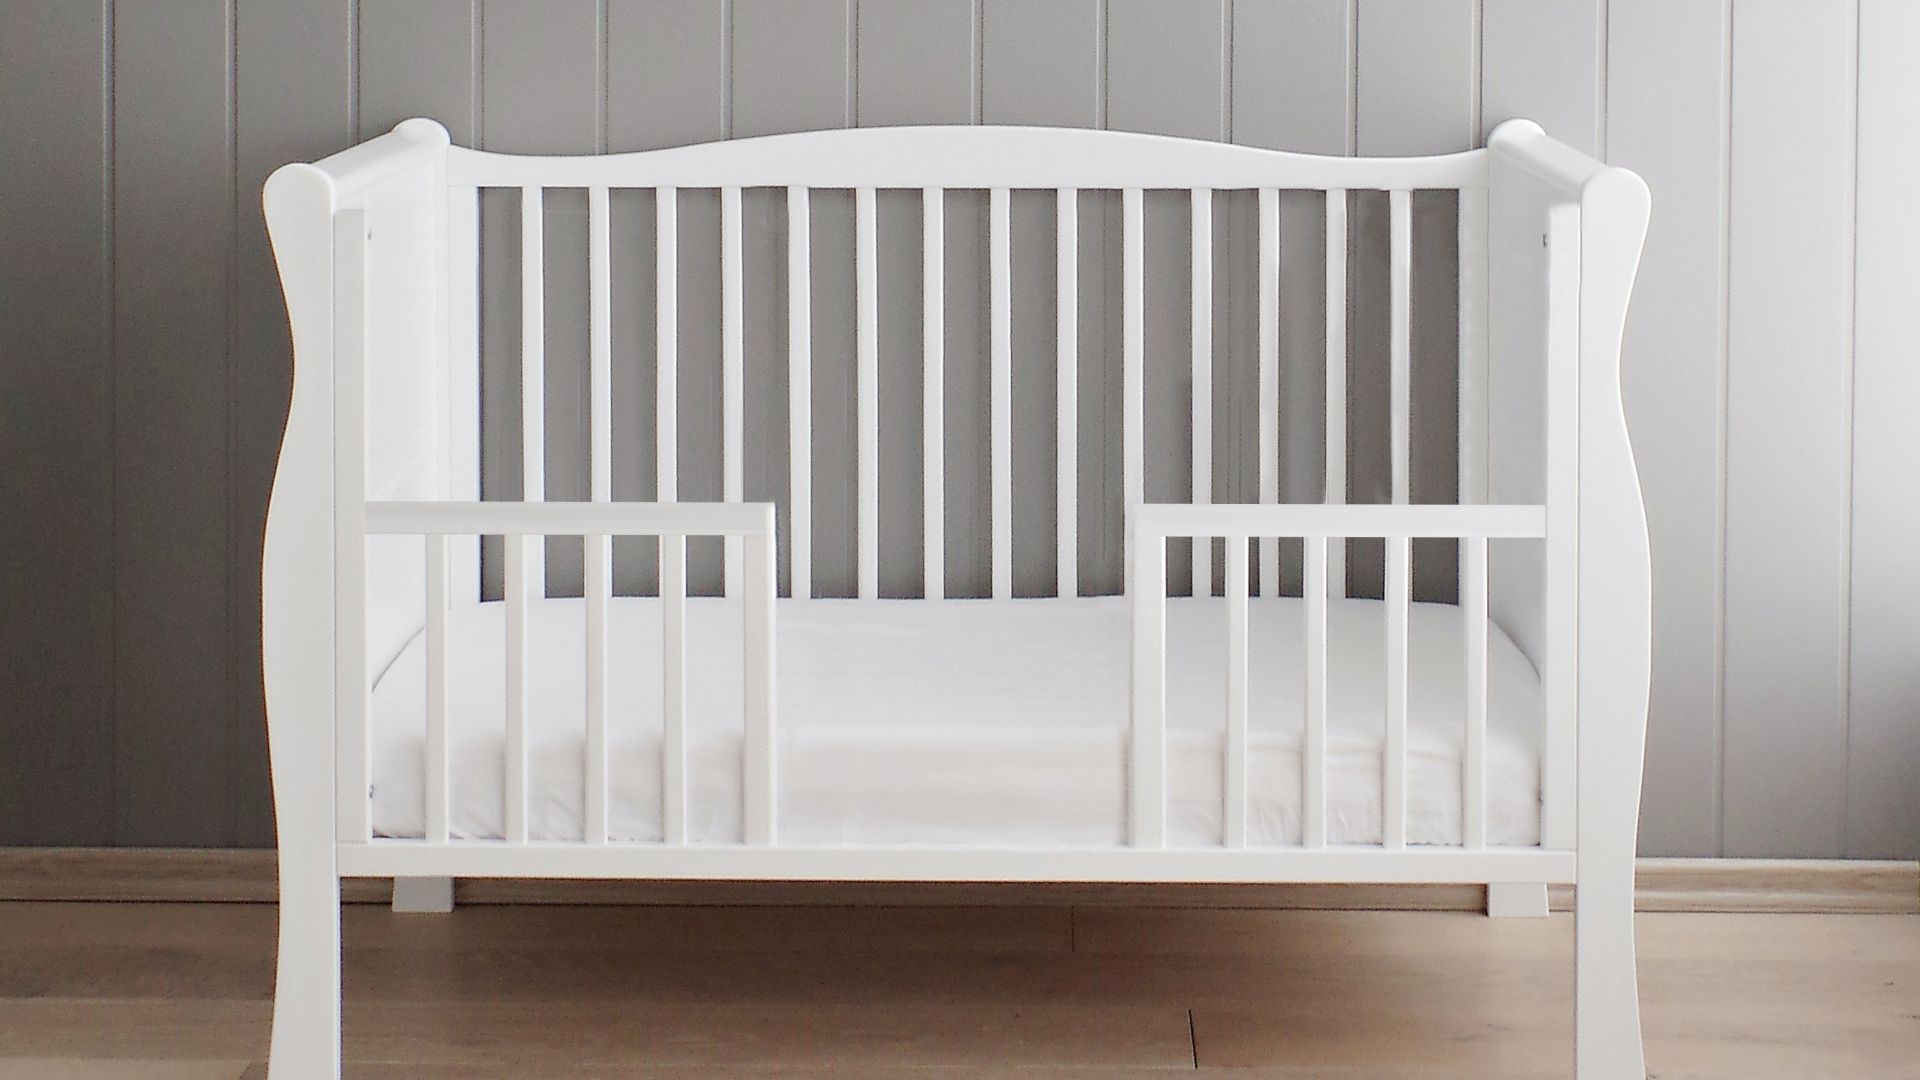 Bok_DayBed_Noble_White-1920x1080%20%282%29.png